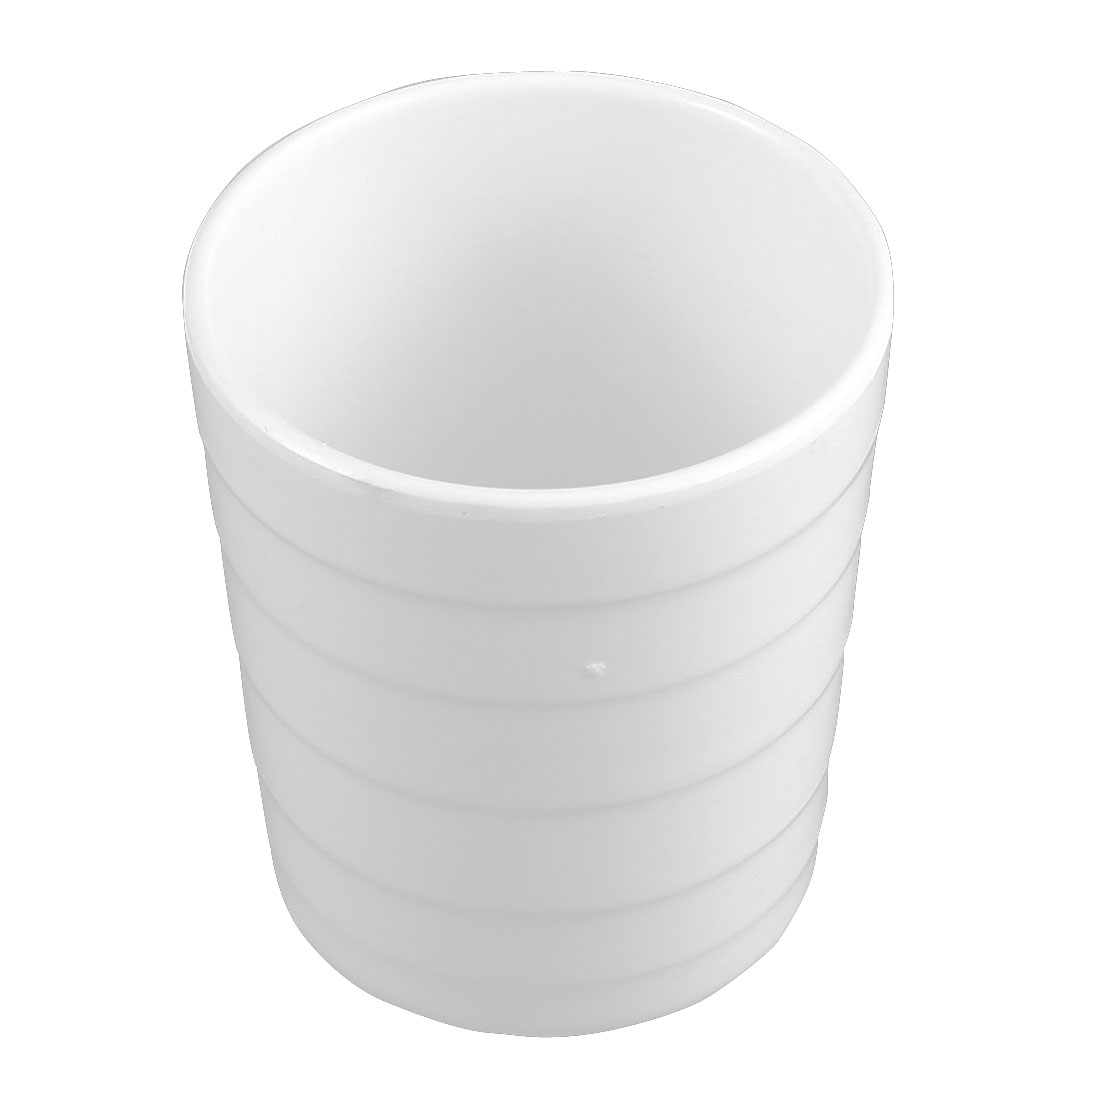 Restaurant Coffee Shop Cylinder Design Water Tea Drinking Cup White